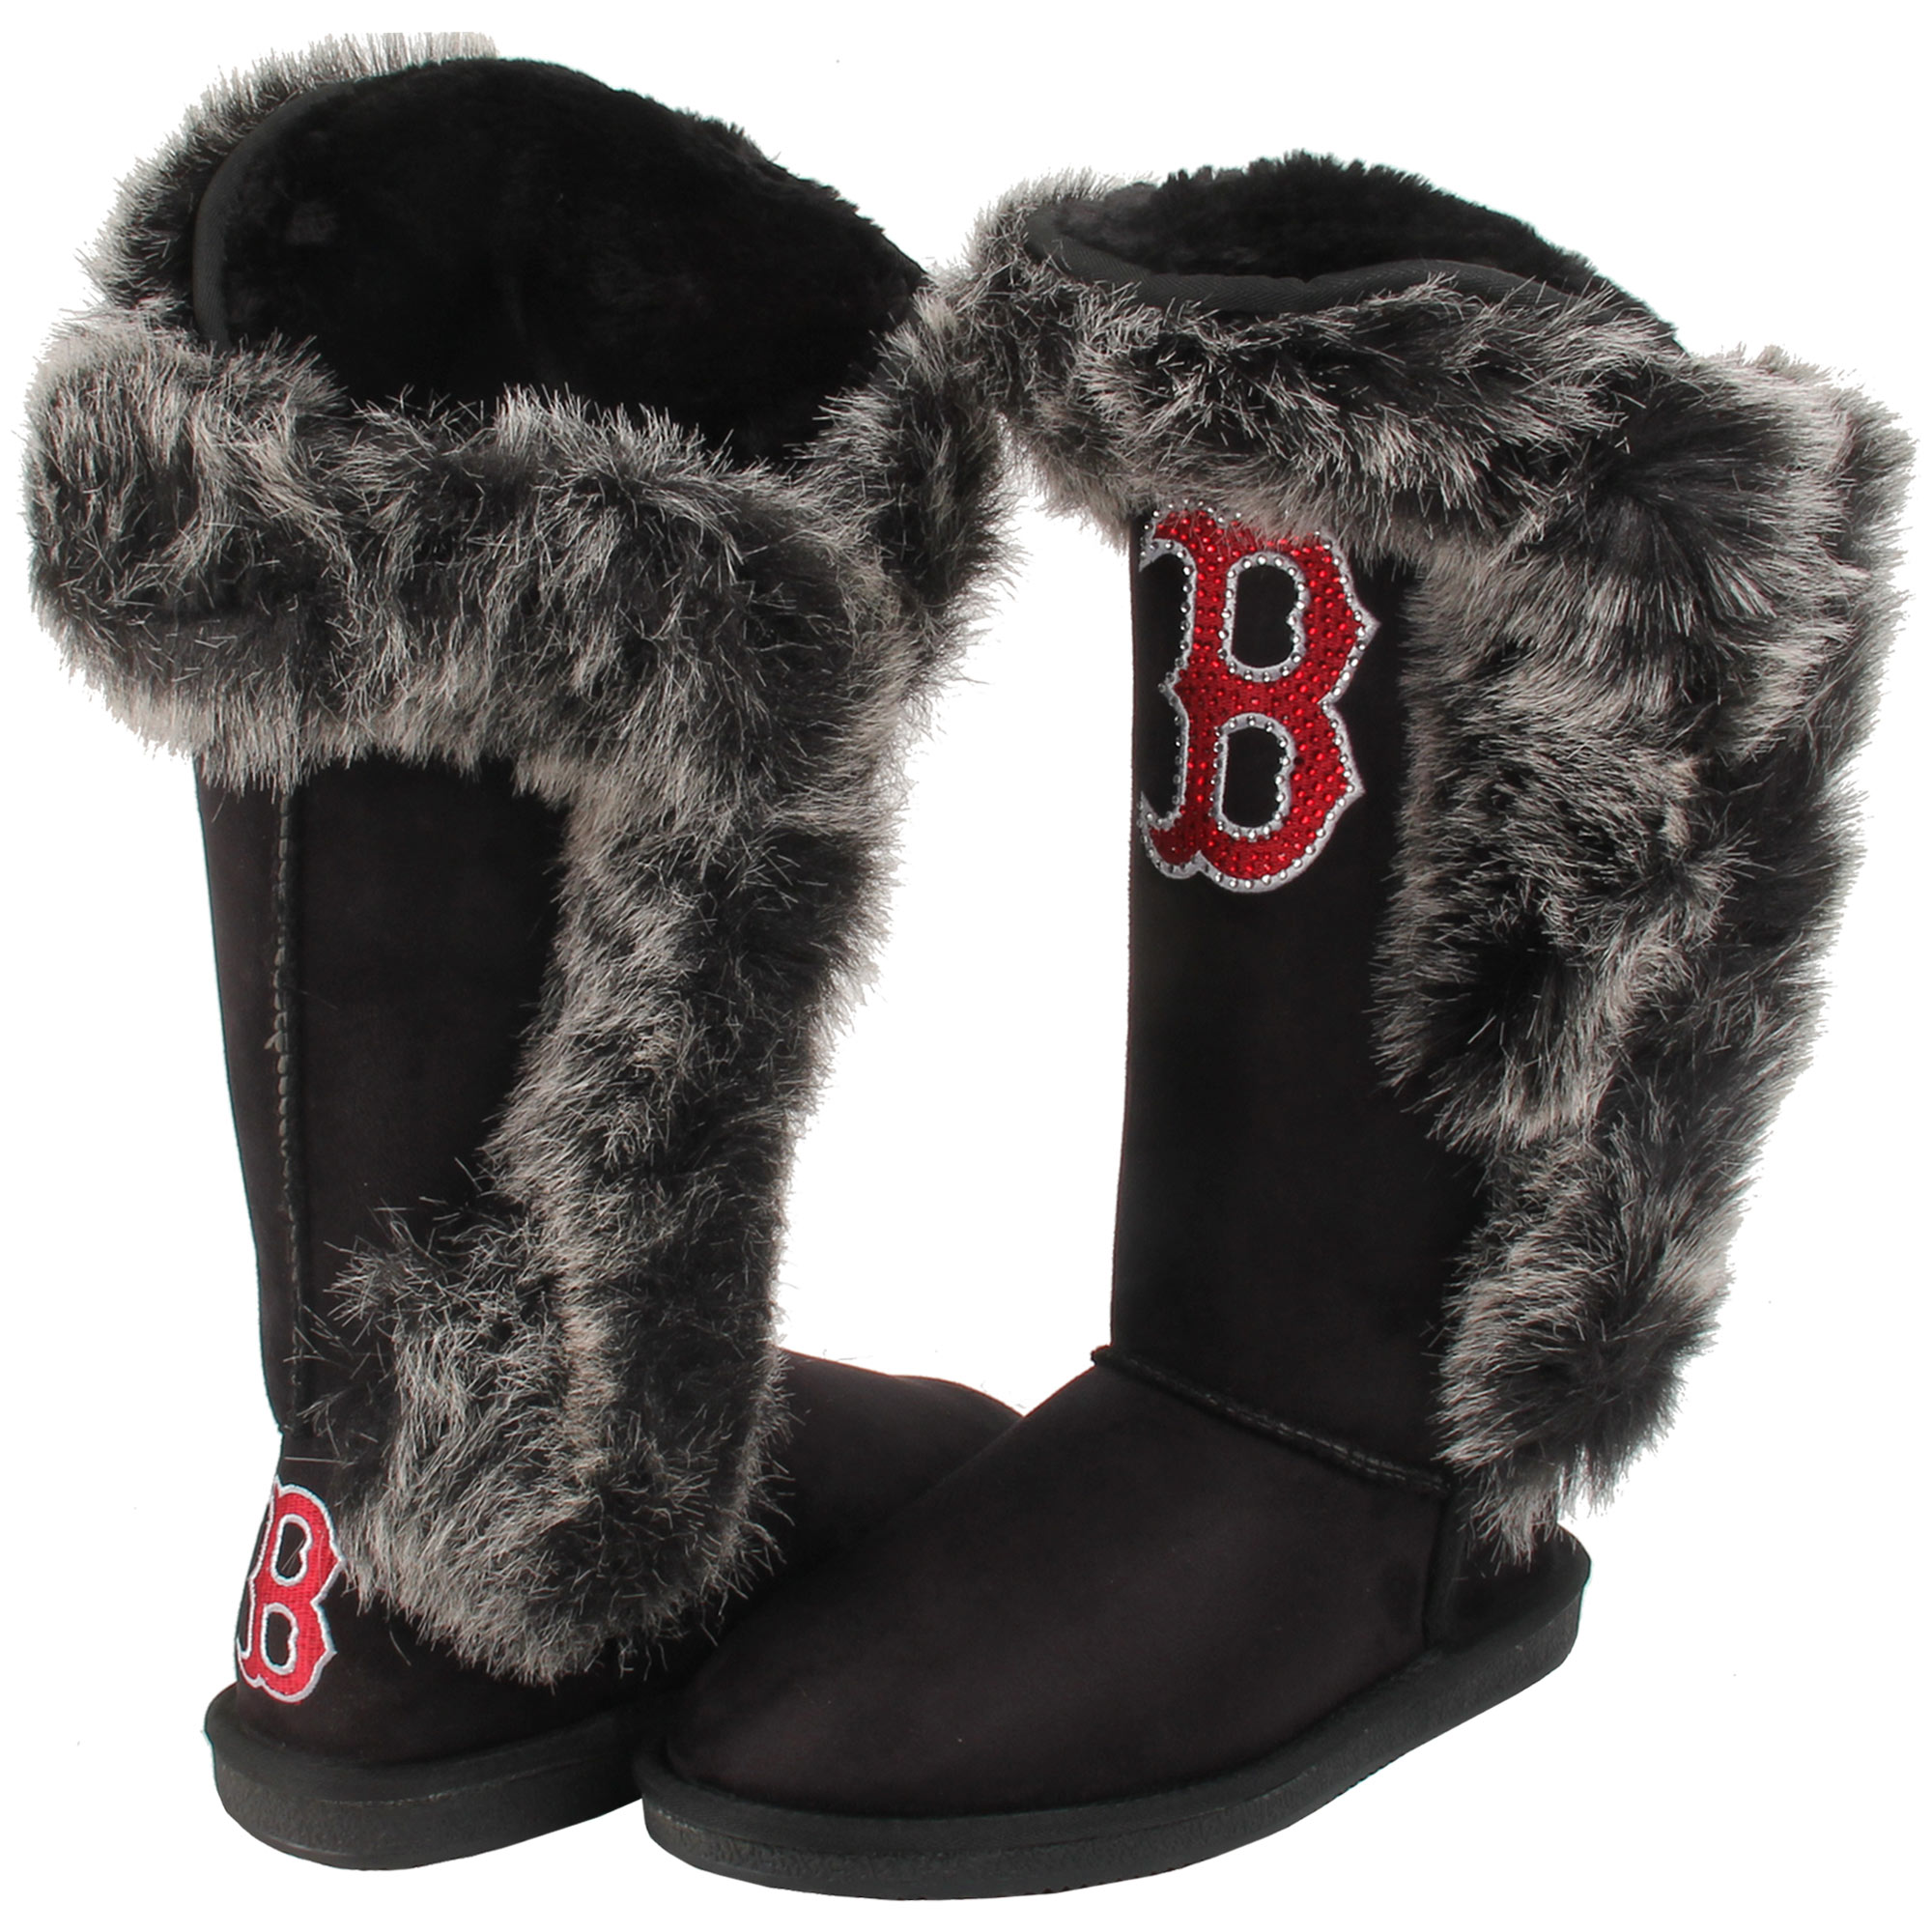 Boston Red Sox Cuce Shoes Women's Victorious Boots Black by Cuce Shoes